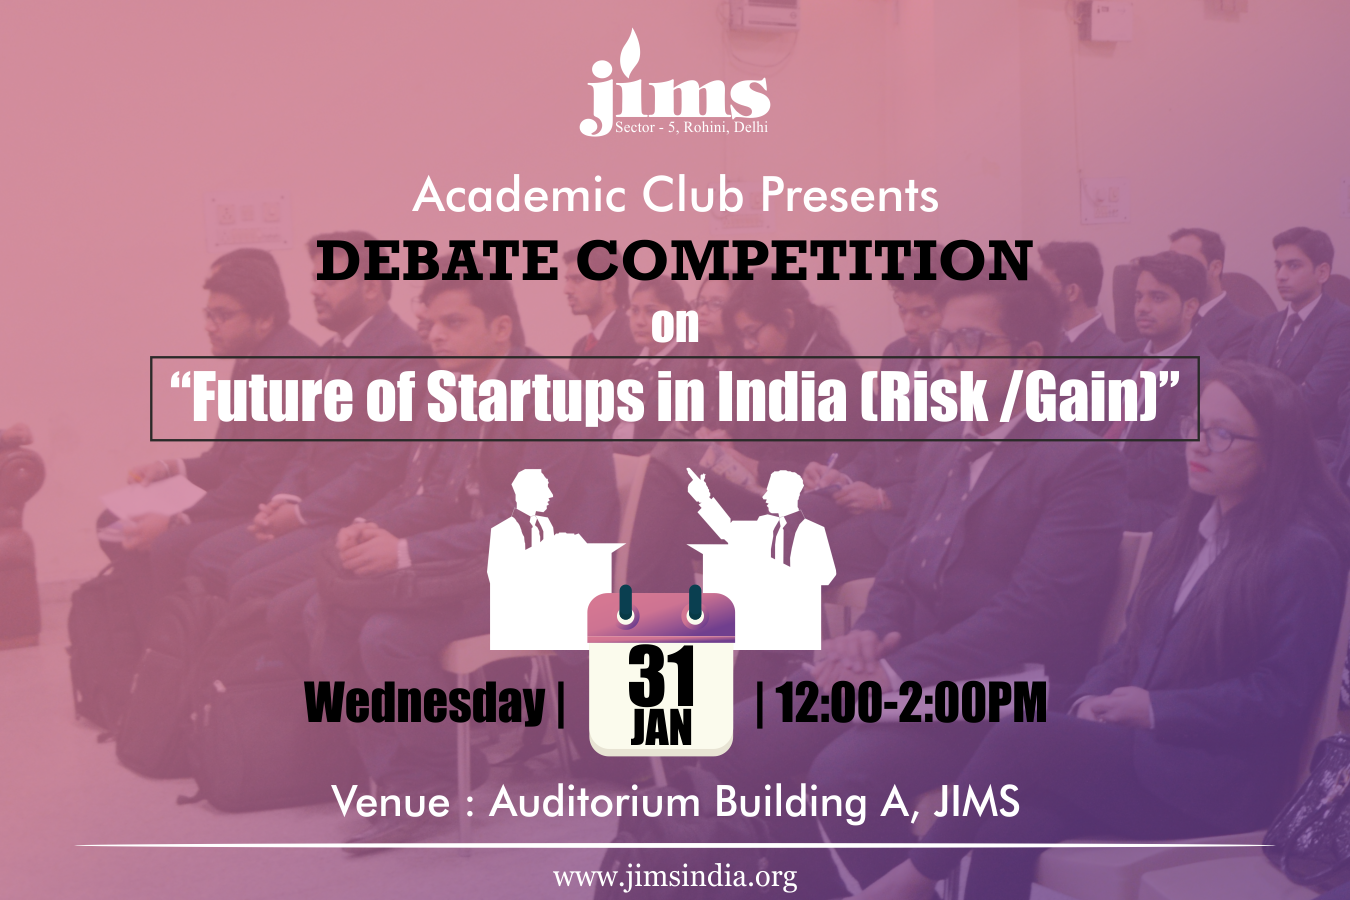 JIMS is organizing a Debate Competition on future of Startups in India